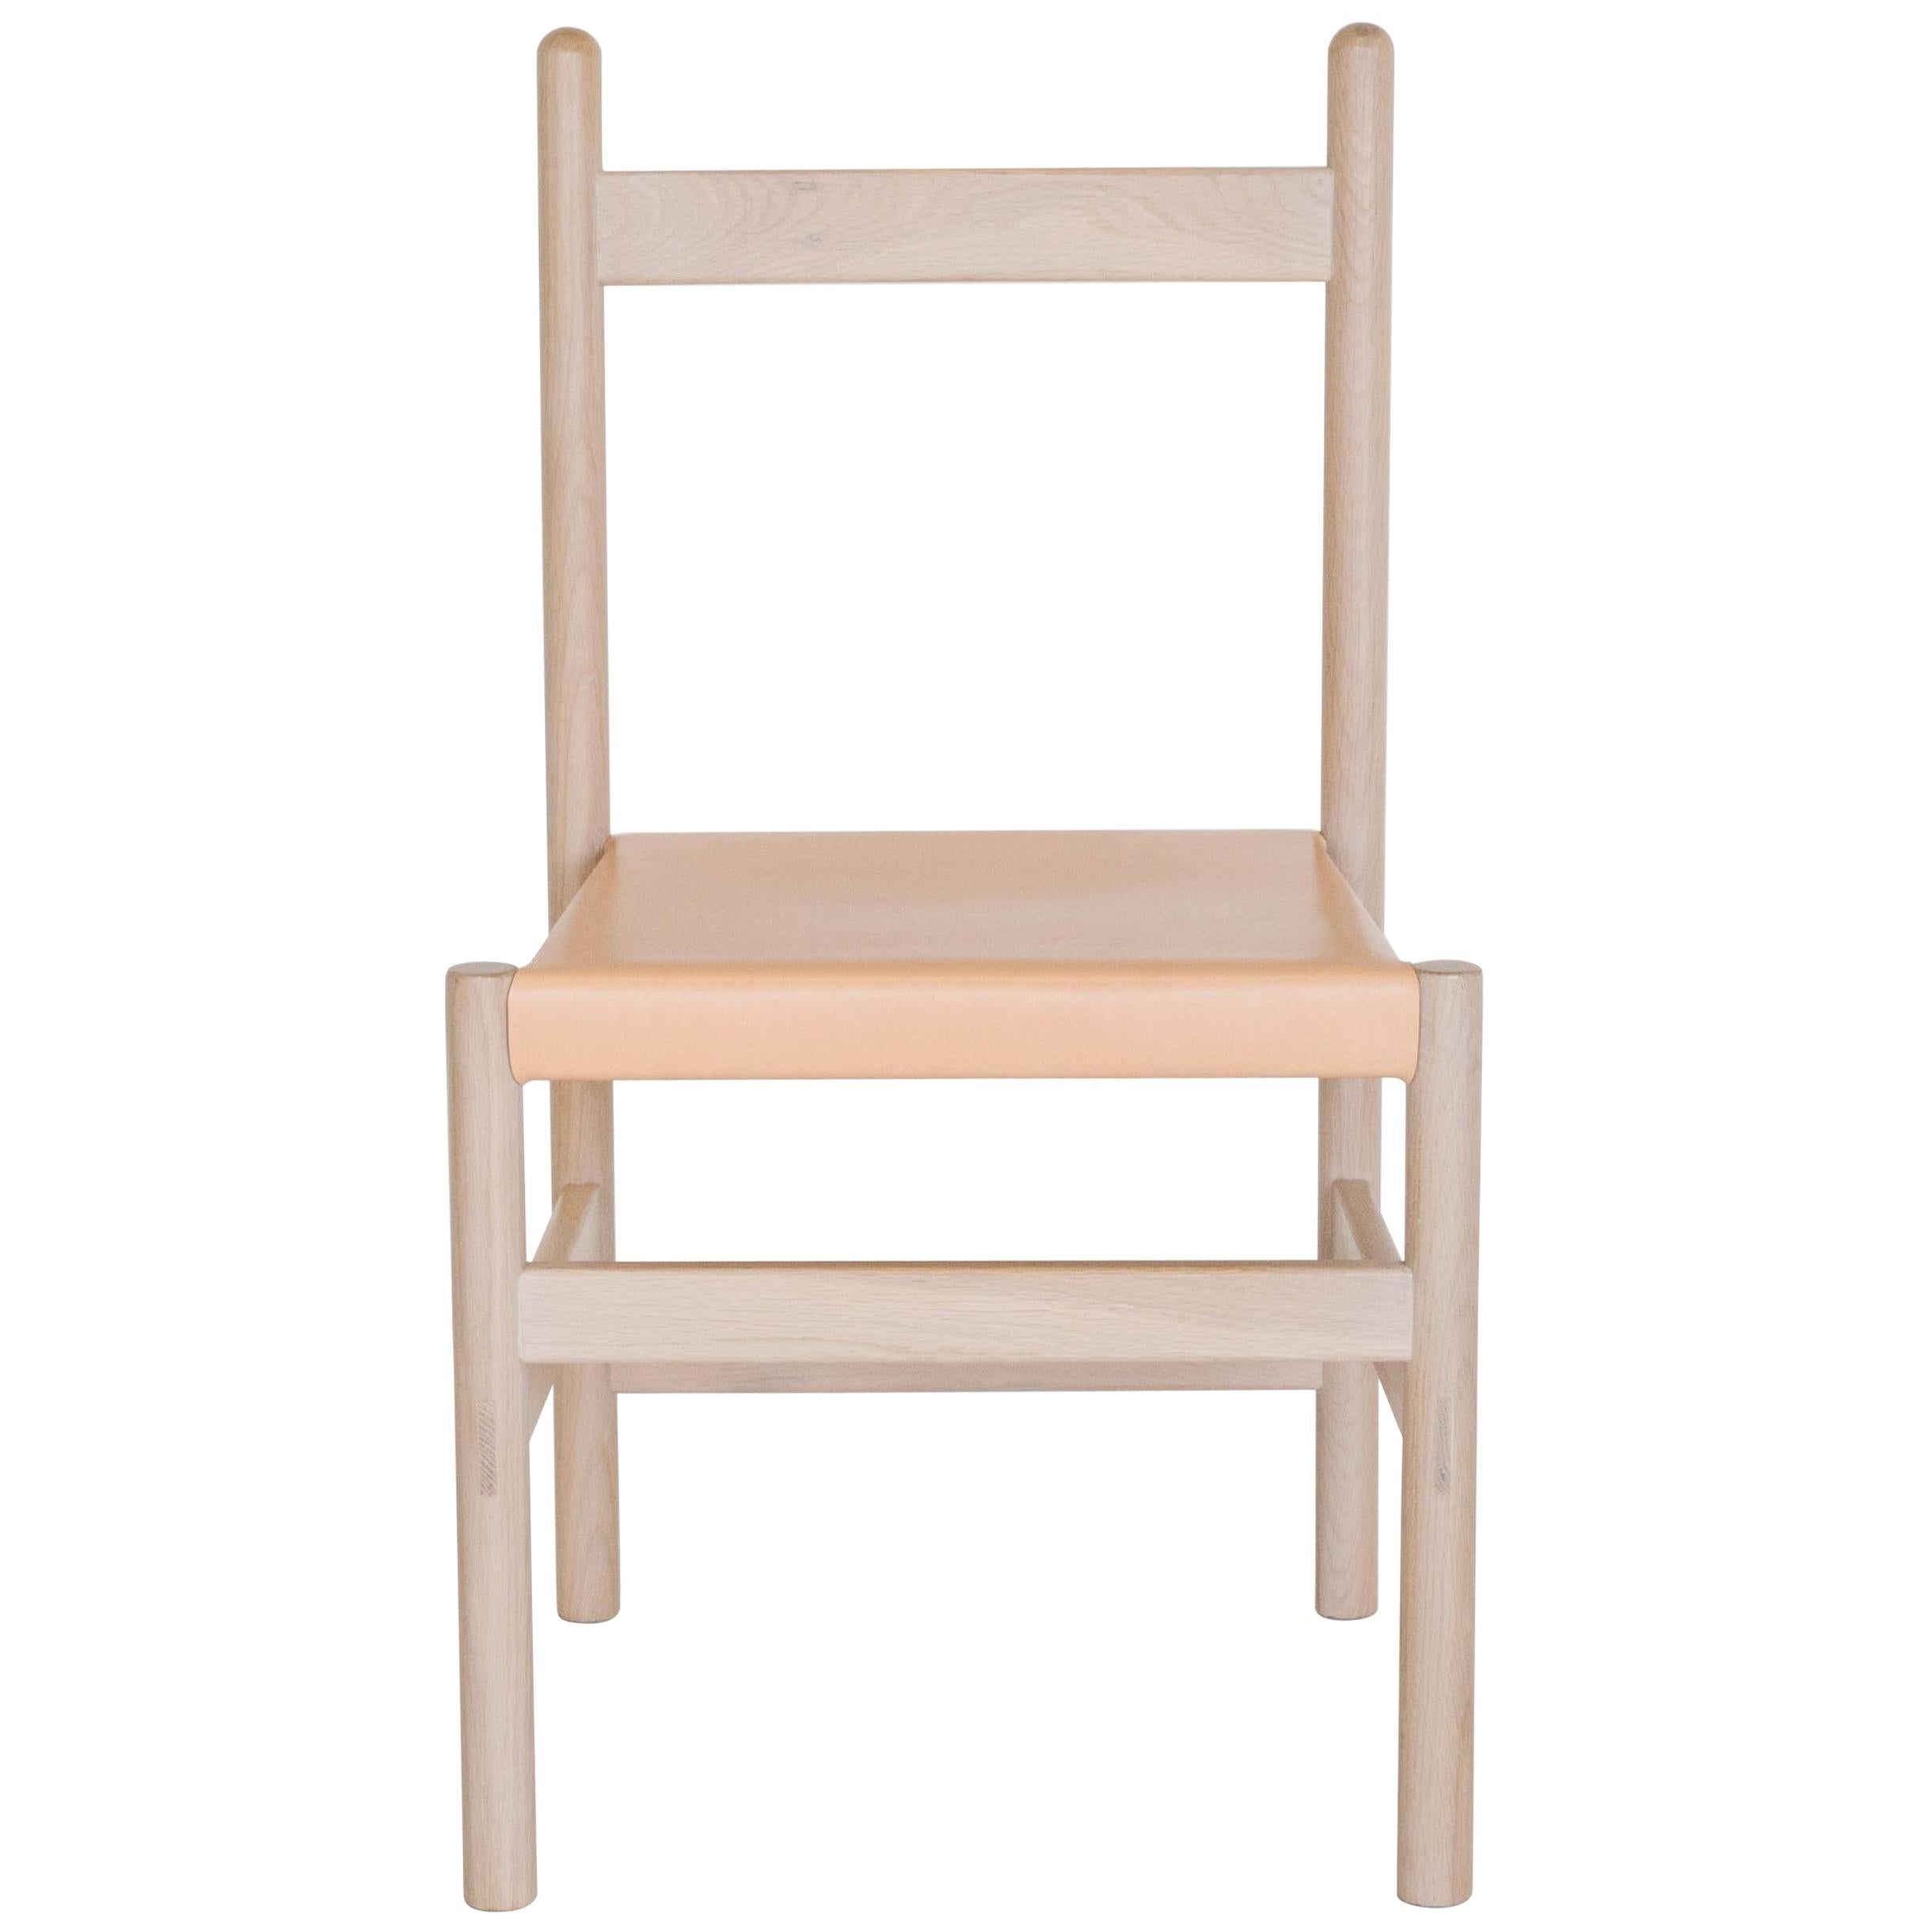 Juniper Chair by Sun at Six, Nude Minimalist Chair in Wood and Leather